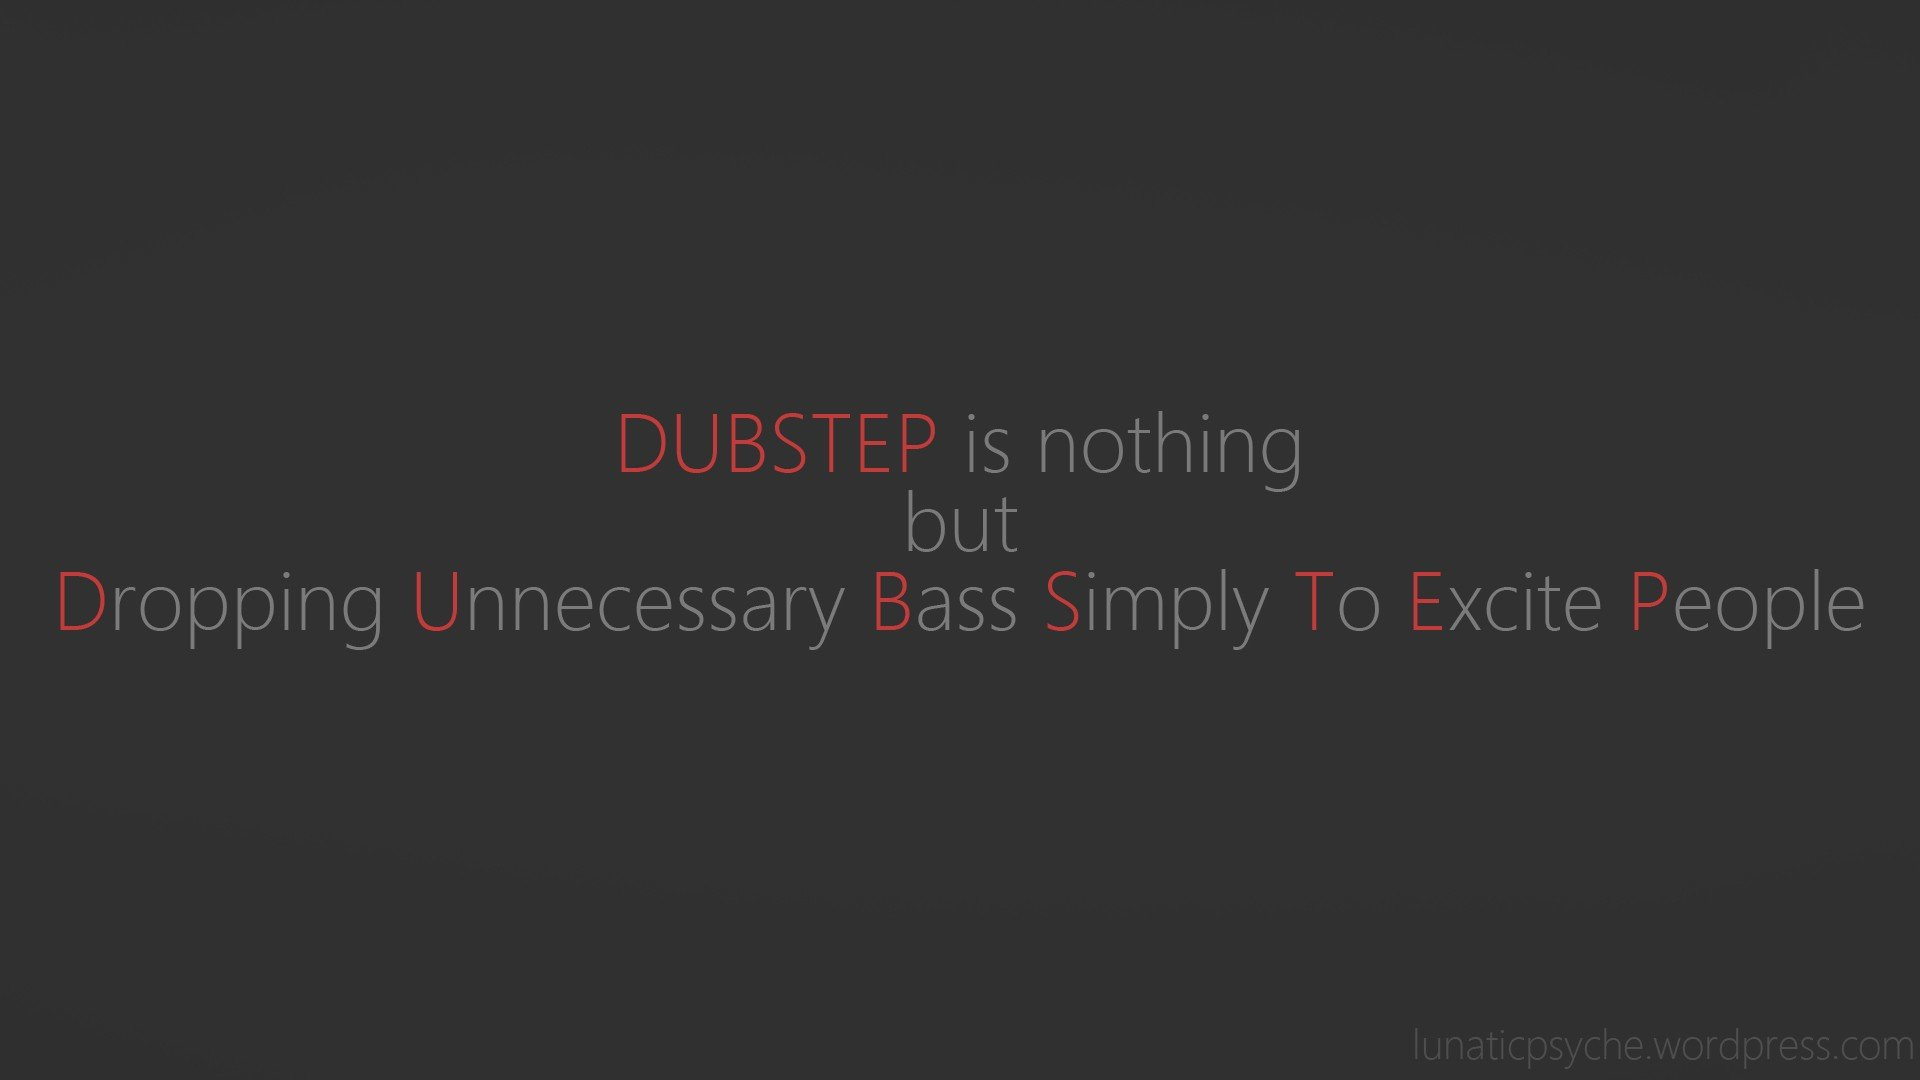 High Resolution Dubstep Hd 1080p Wallpaper ID11182 For PC